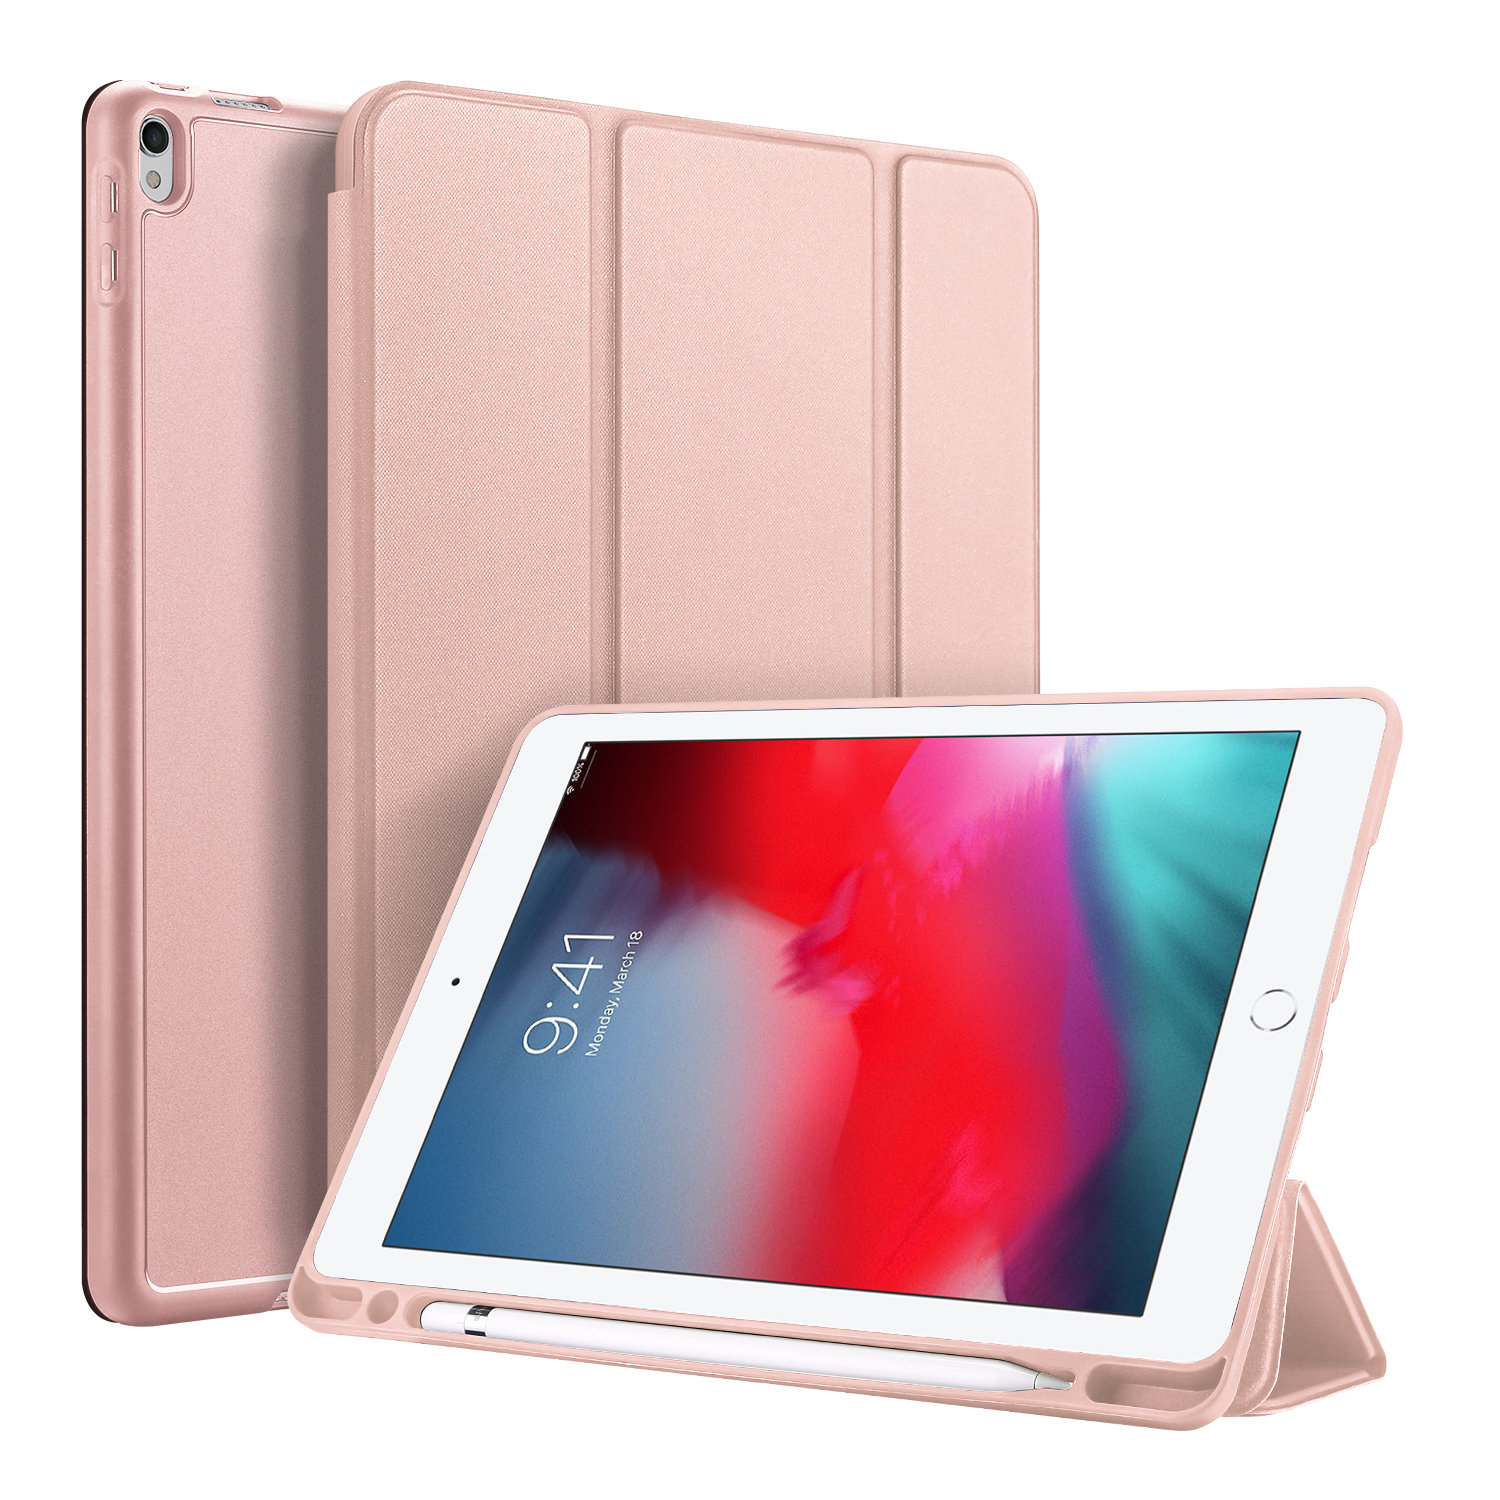 DUX DUCIS For iPad air 3 2019 / ipad pro 10.5 PU Leather+TPU Bottom Shell 3 Folding Protective Case with Pen Holder Pink